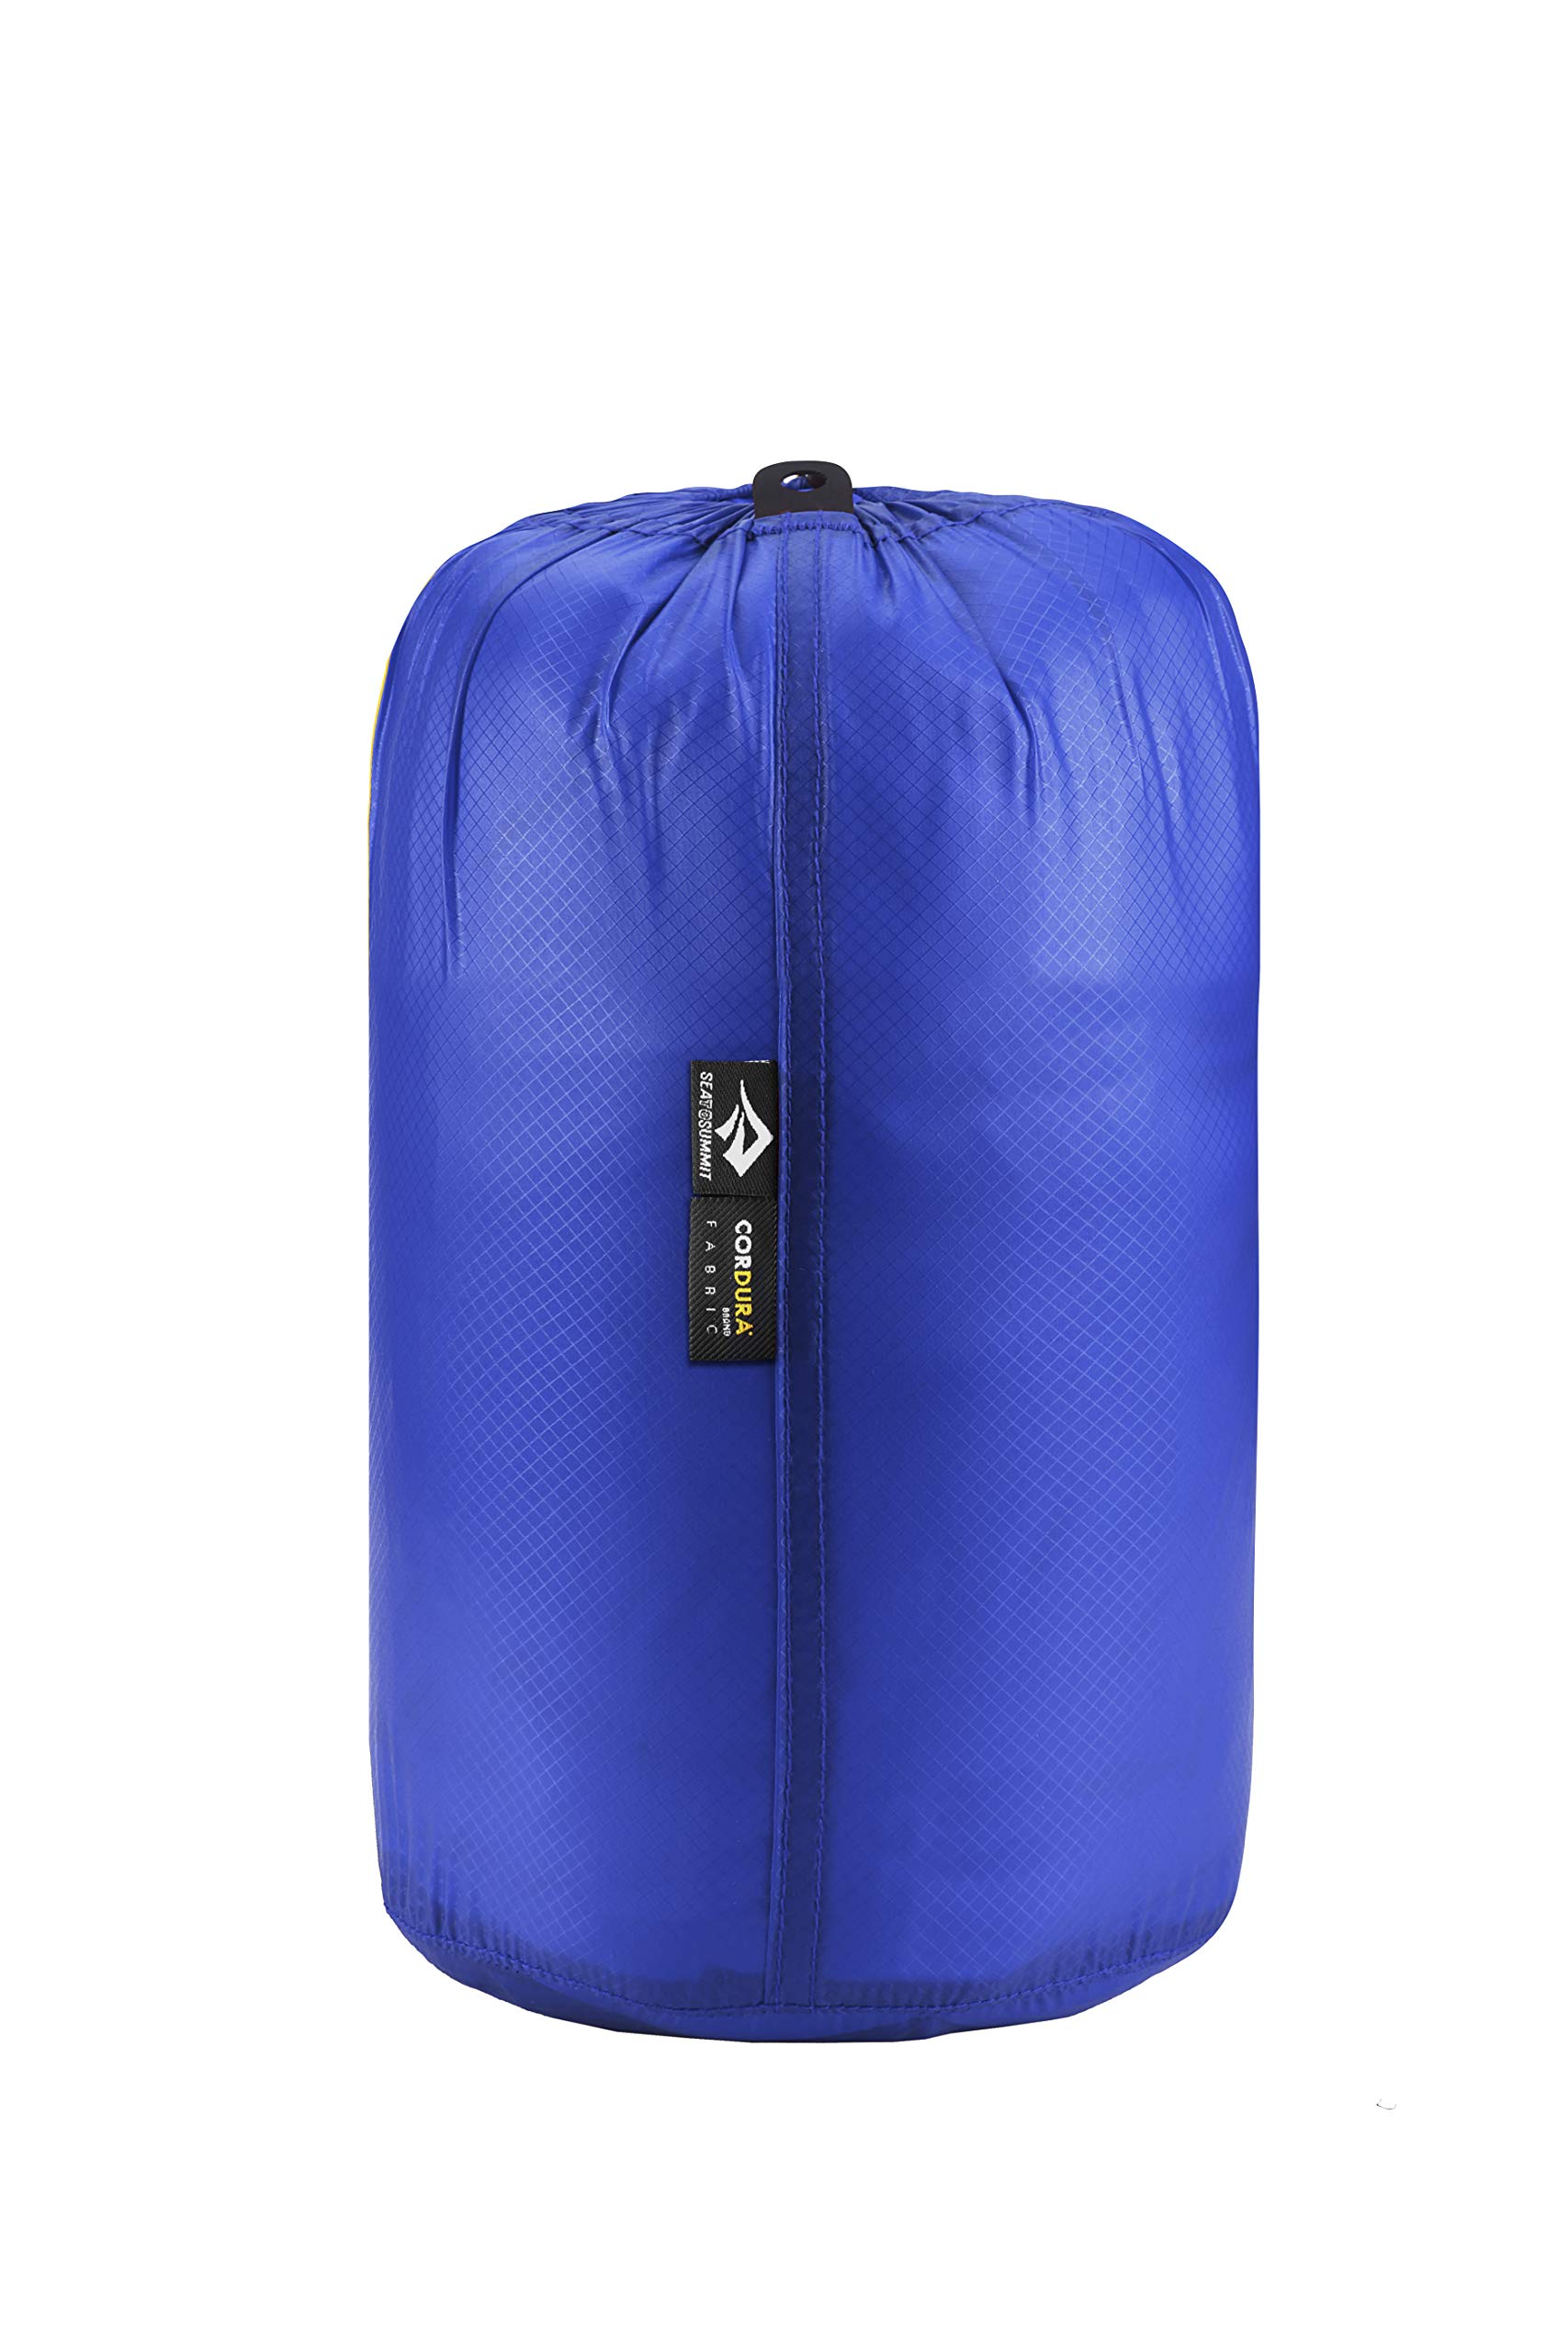 Sea to Summit Ultra-SIL Stuff Sack, Royal Blue, 6.5 Liter by Sea to Summit